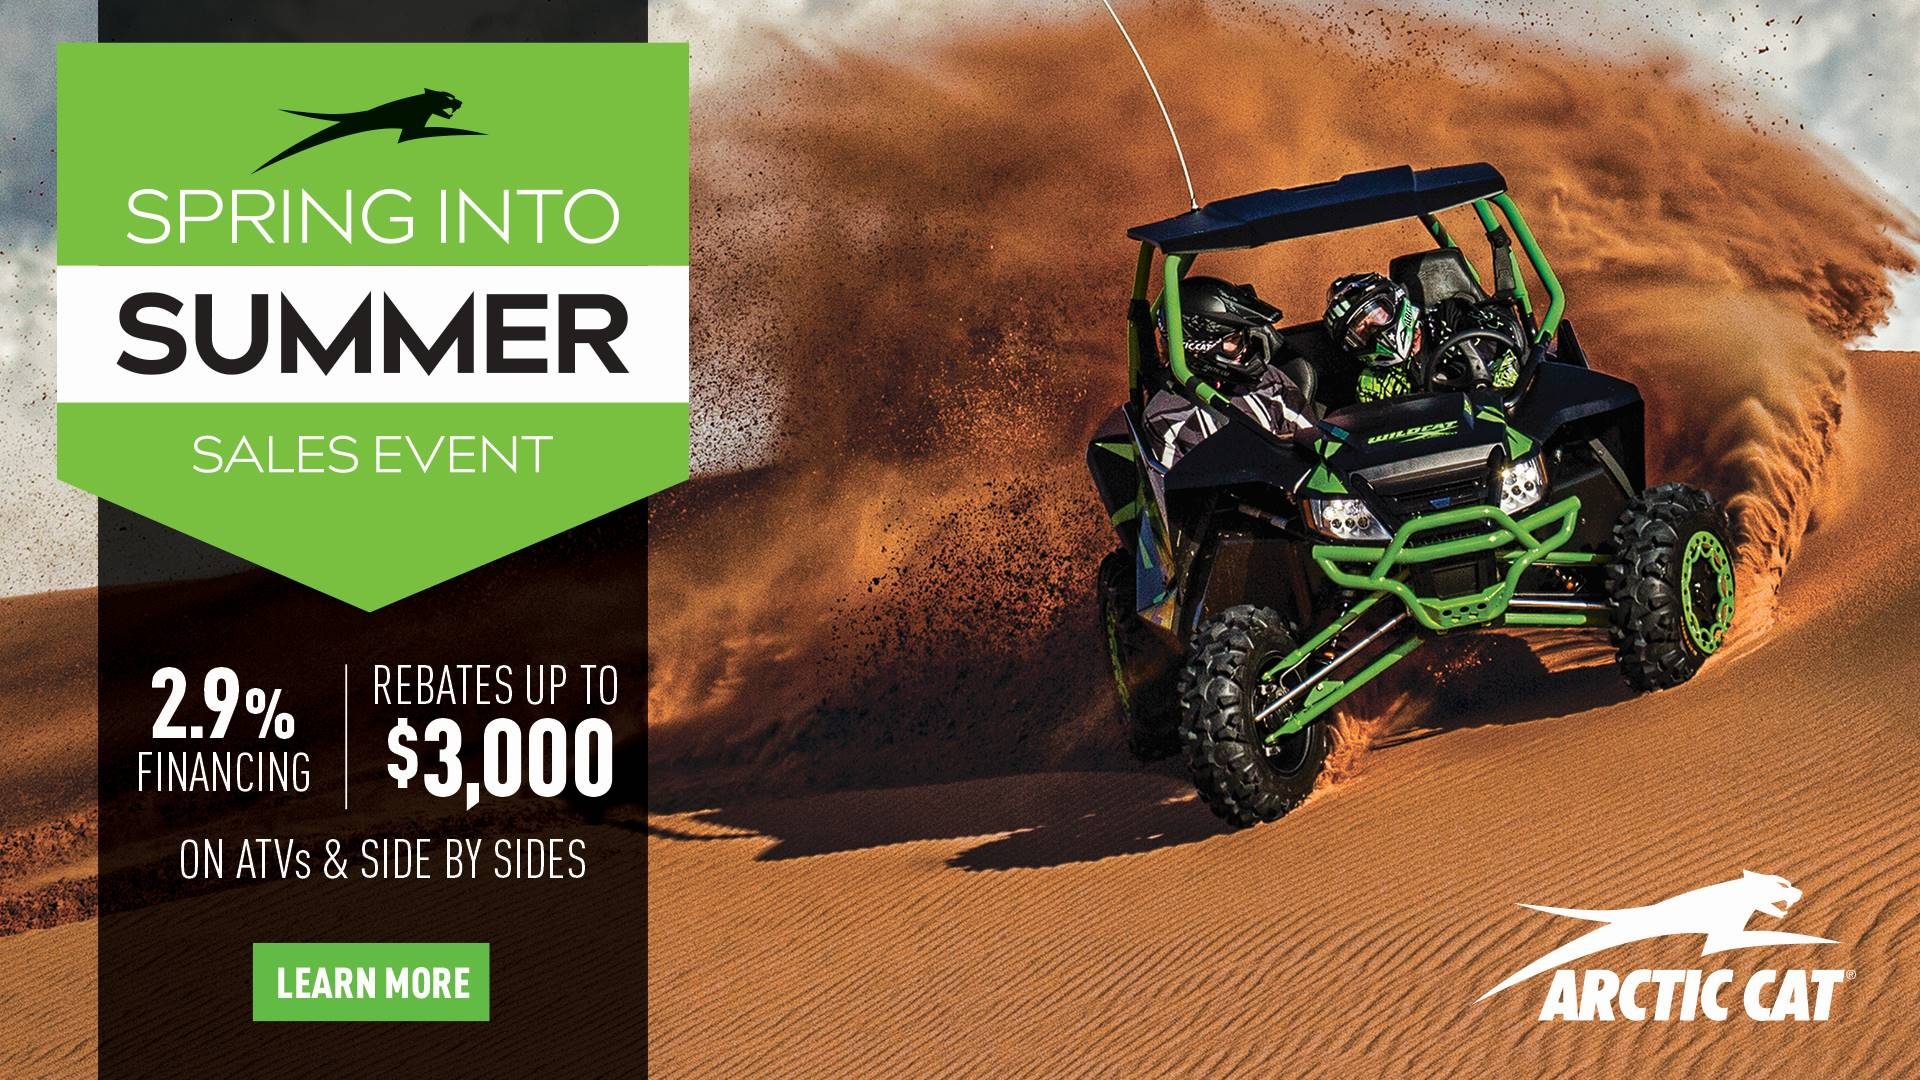 Arctic Cat - Spring Into Summer Sales Event - SxSs - MY2017